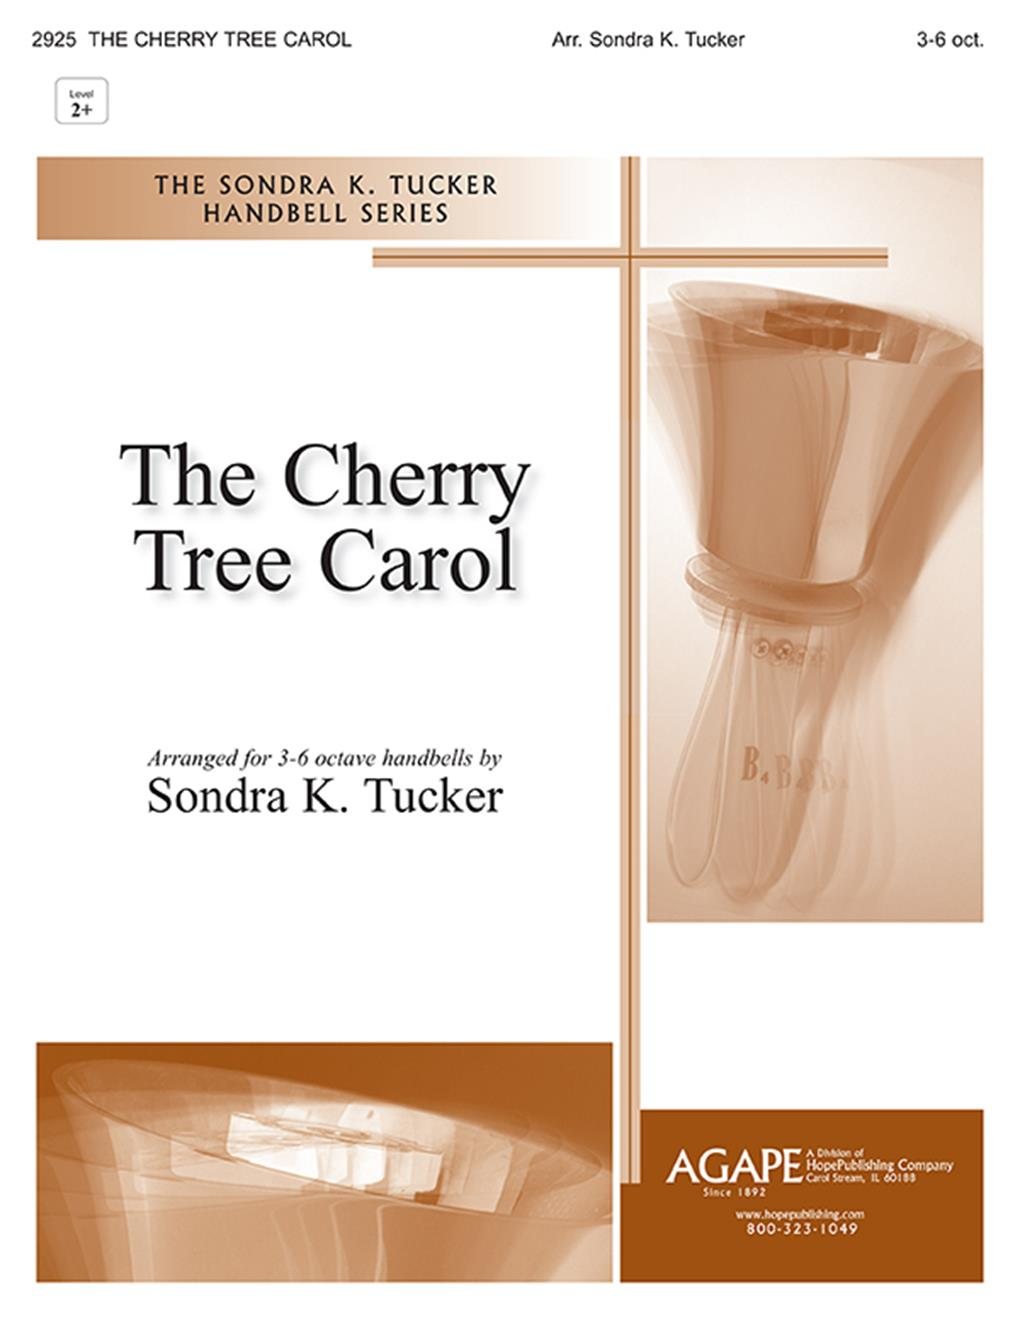 Cherry Tree Carol The - 3-6 Oct. Cover Image